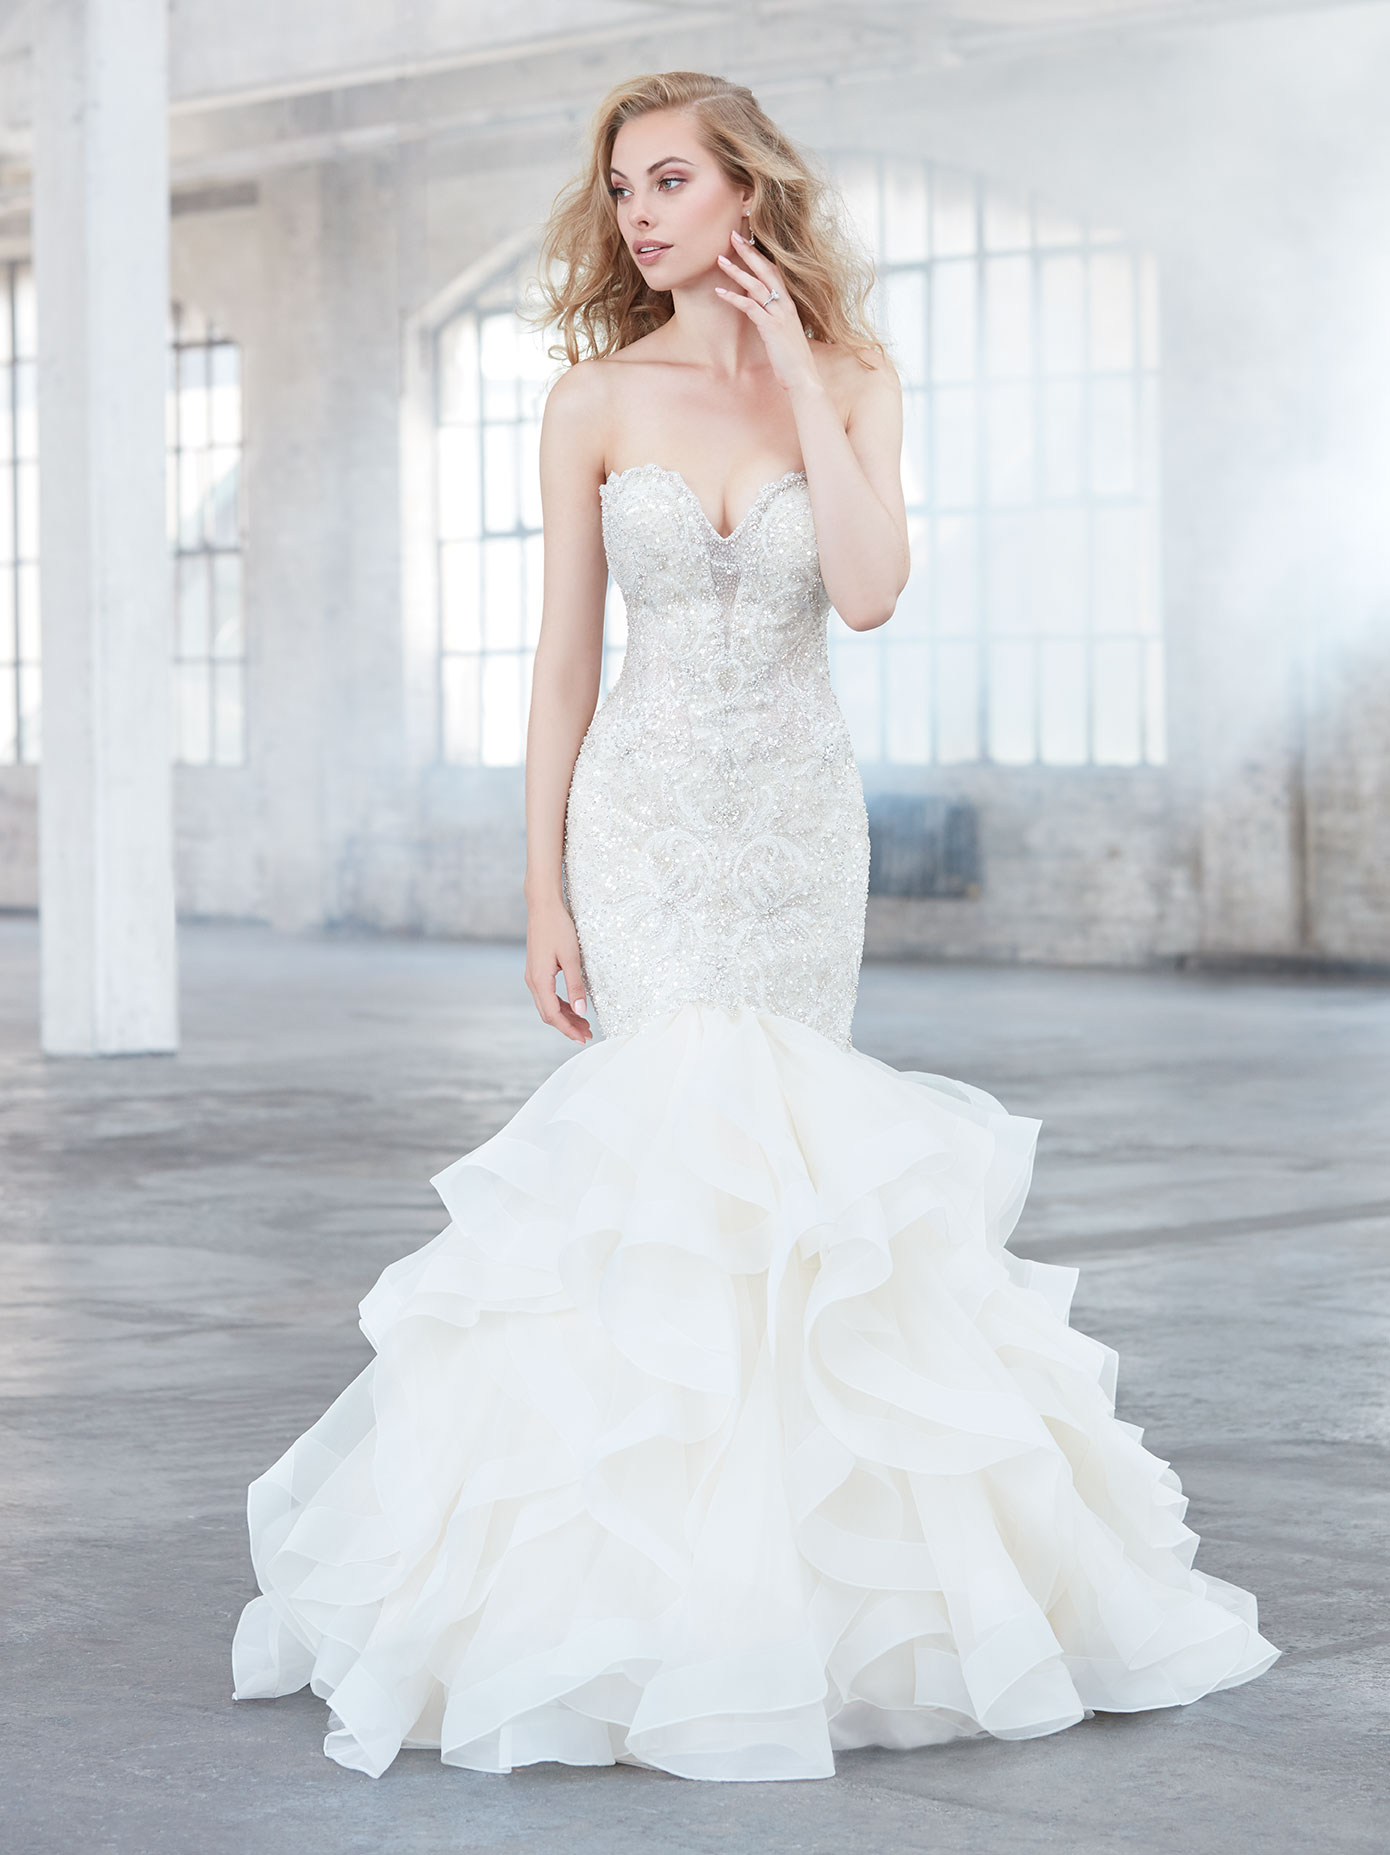 Allure Bridal Gowns Melbourne : Fishtail wedding dress featuring a beaded bodice madison james